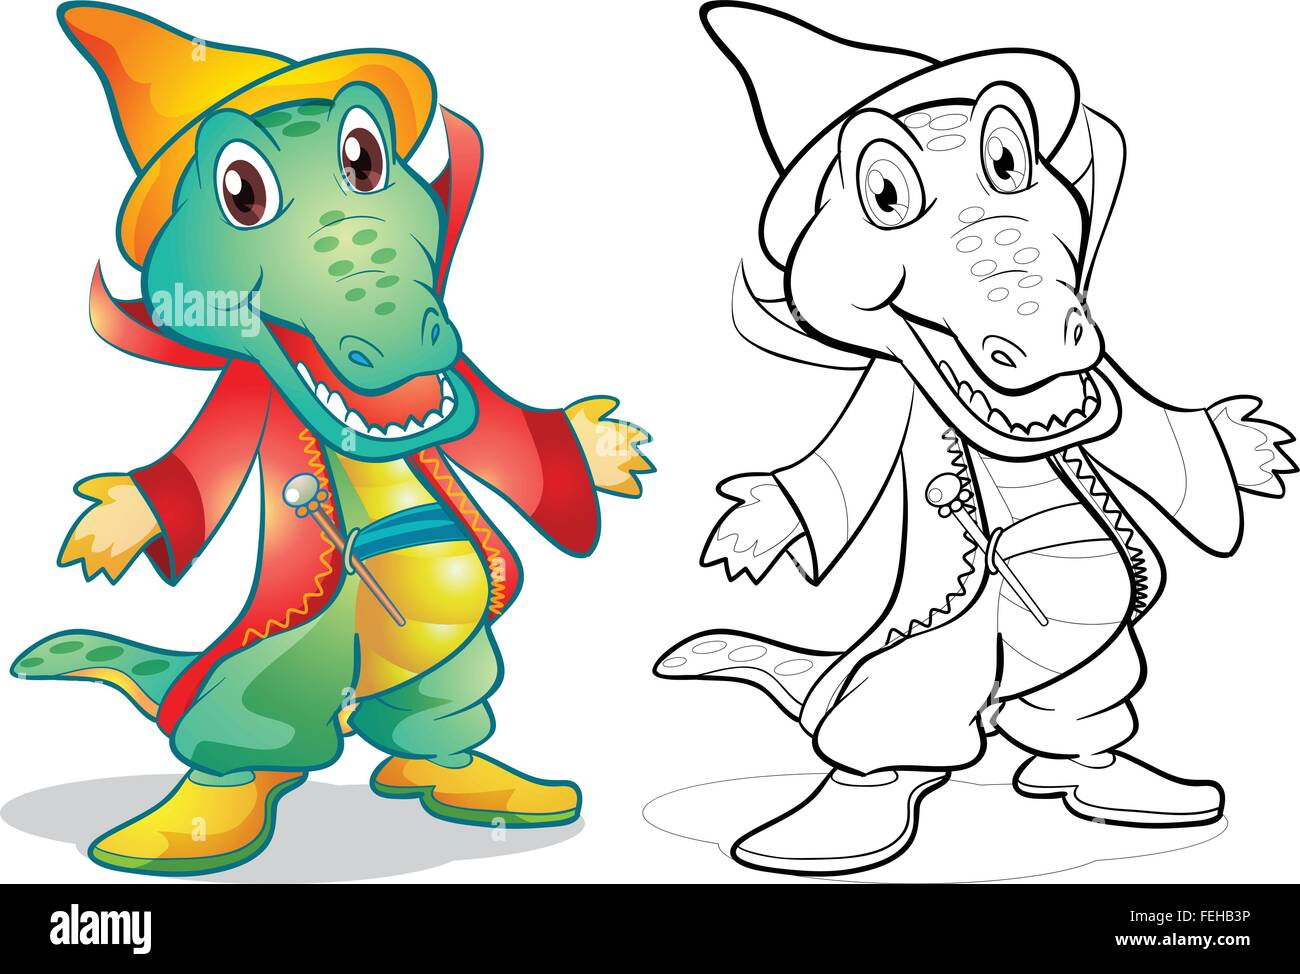 Vector Of Cute Mascot Cartoon Color And Coloring Outline Bear Stock Vector Image Art Alamy Lina is quite silly and picks on her younger brother at times, pulling his ear or pushing him down. vector of cute mascot cartoon color and coloring outline bear stock vector image art alamy